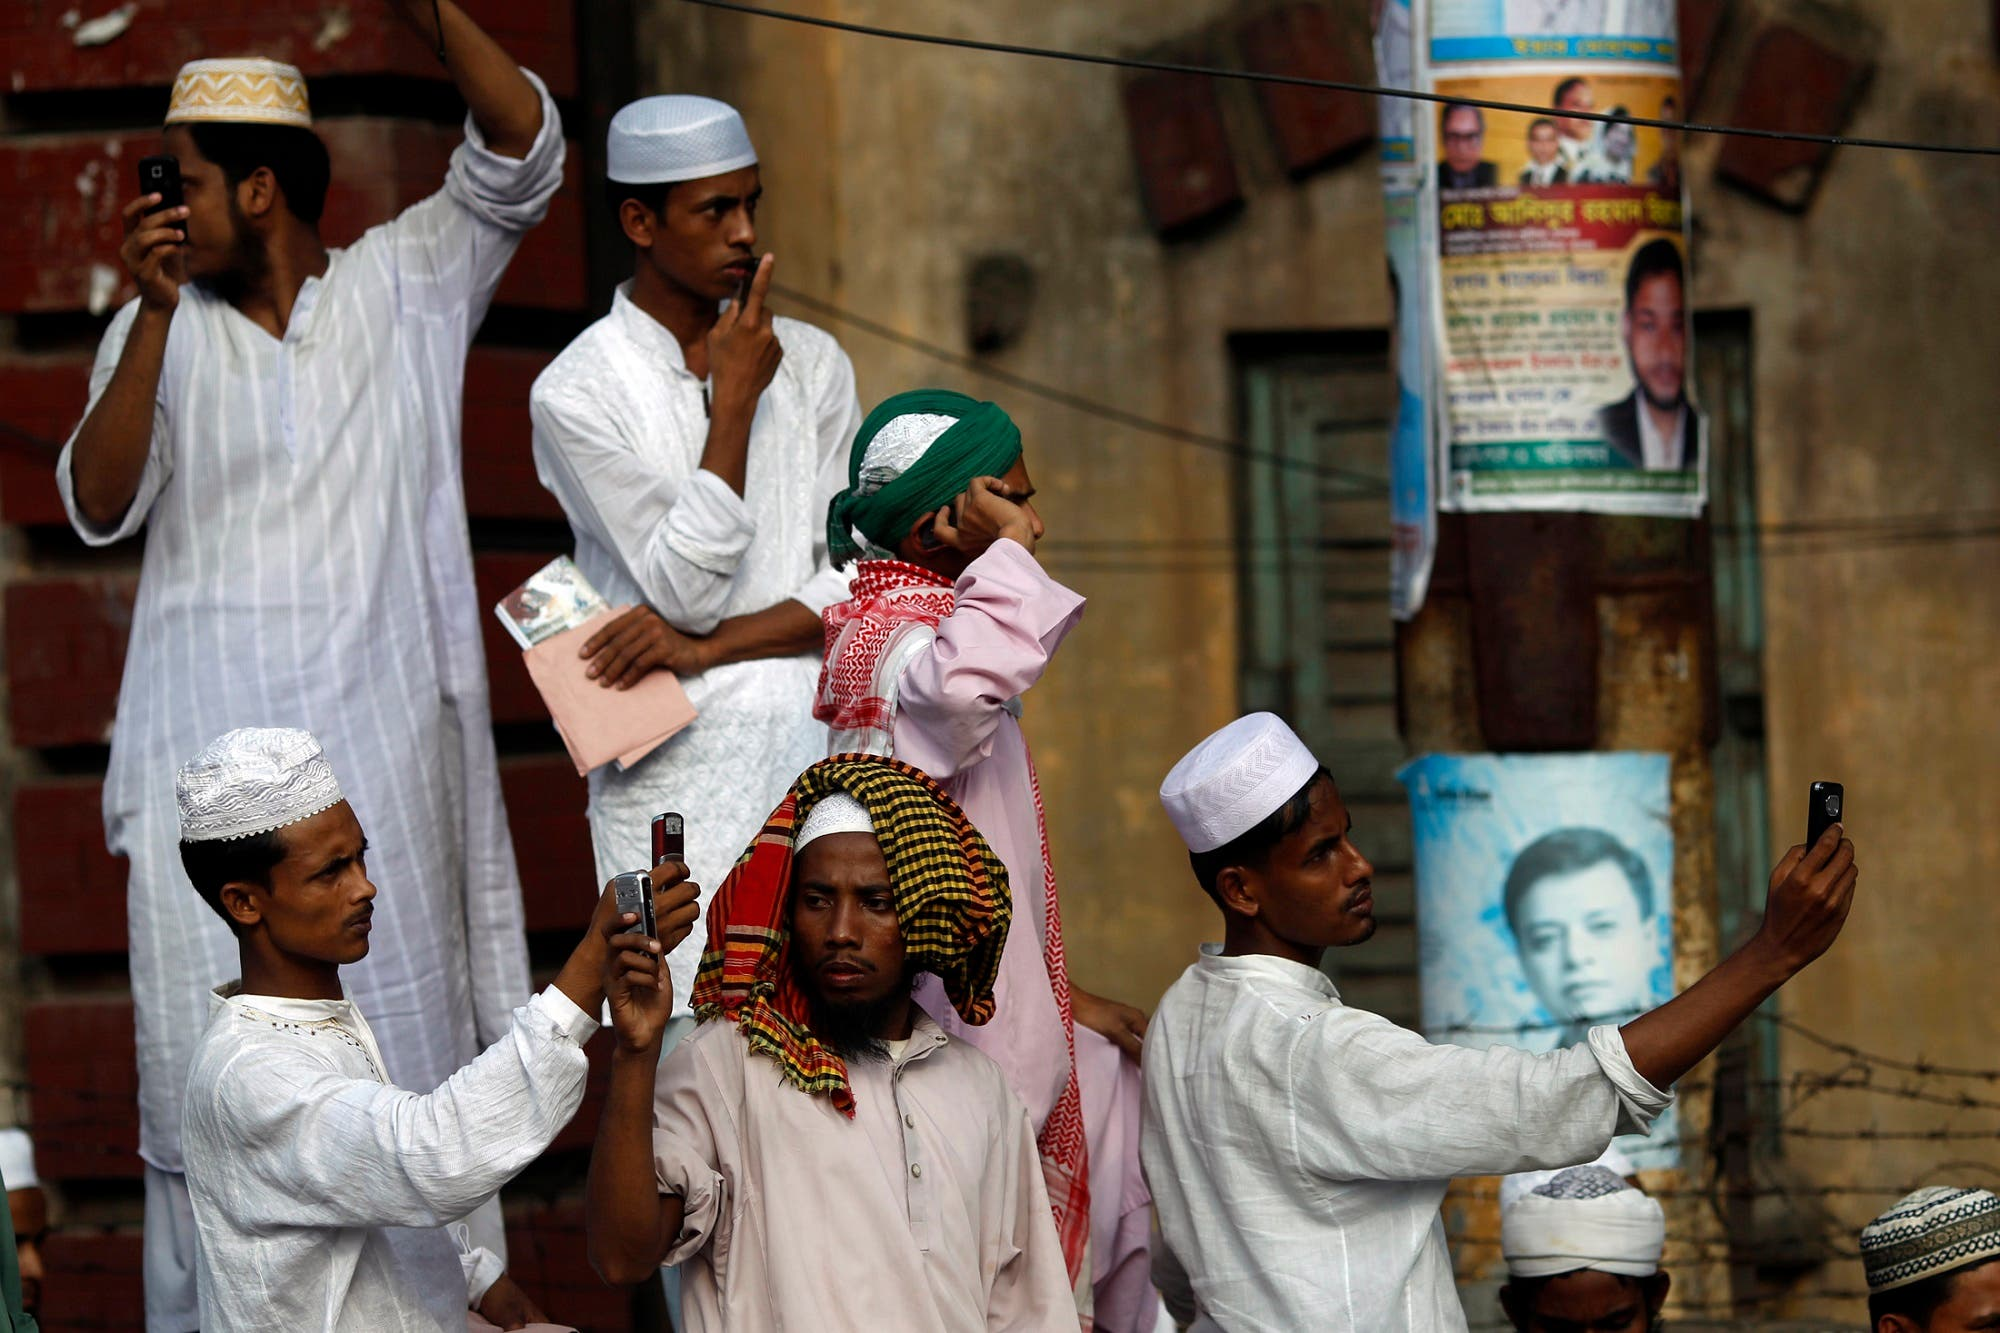 The mobile phones were seized during a search operation by the Madrasa authorities. (File photo: Reuters)